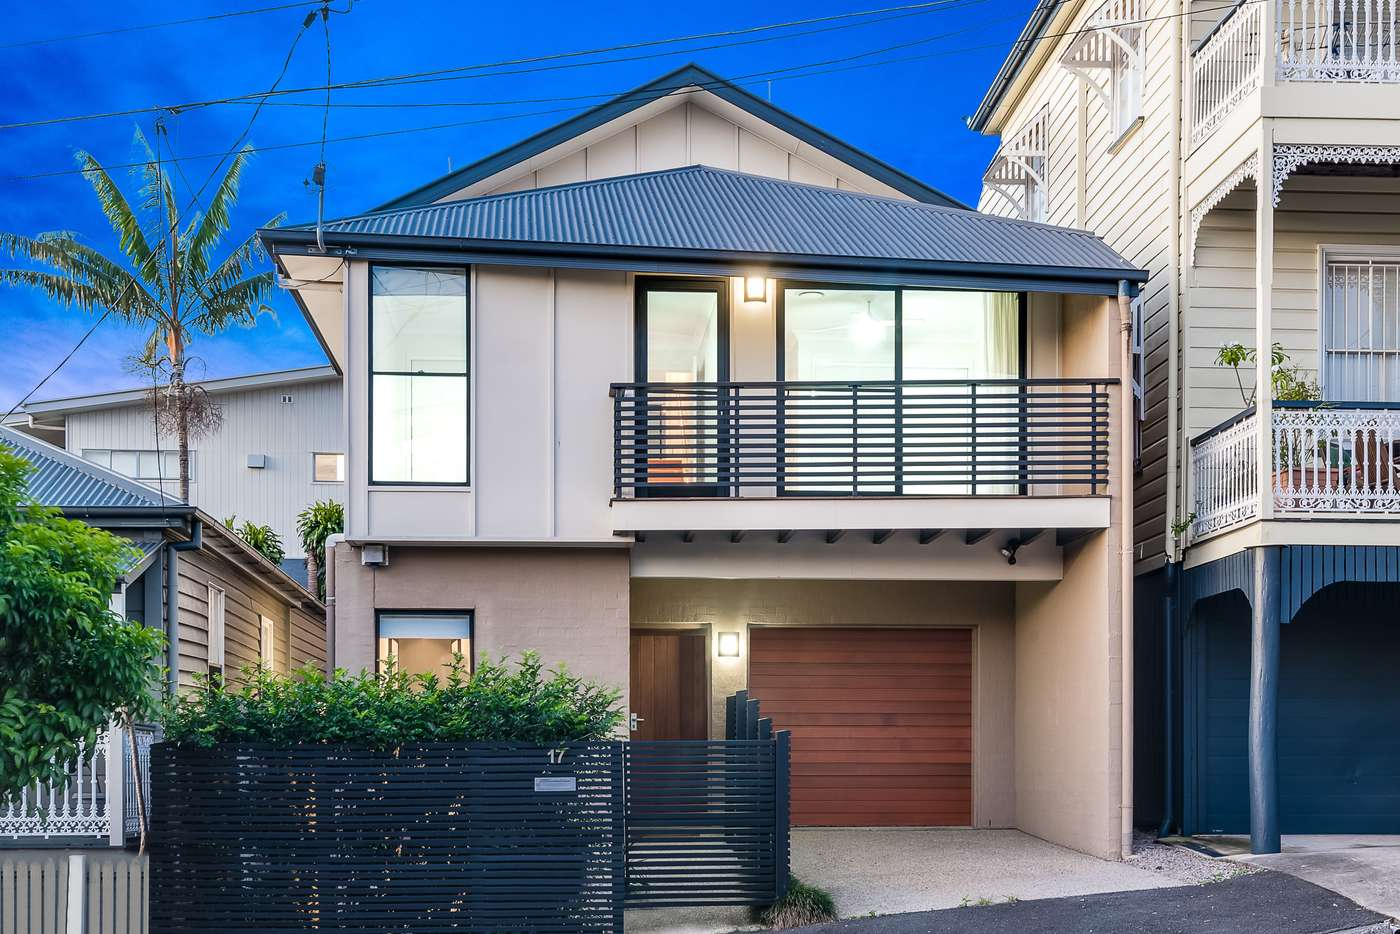 Main view of Homely house listing, 17 Cricket Street, Petrie Terrace QLD 4000